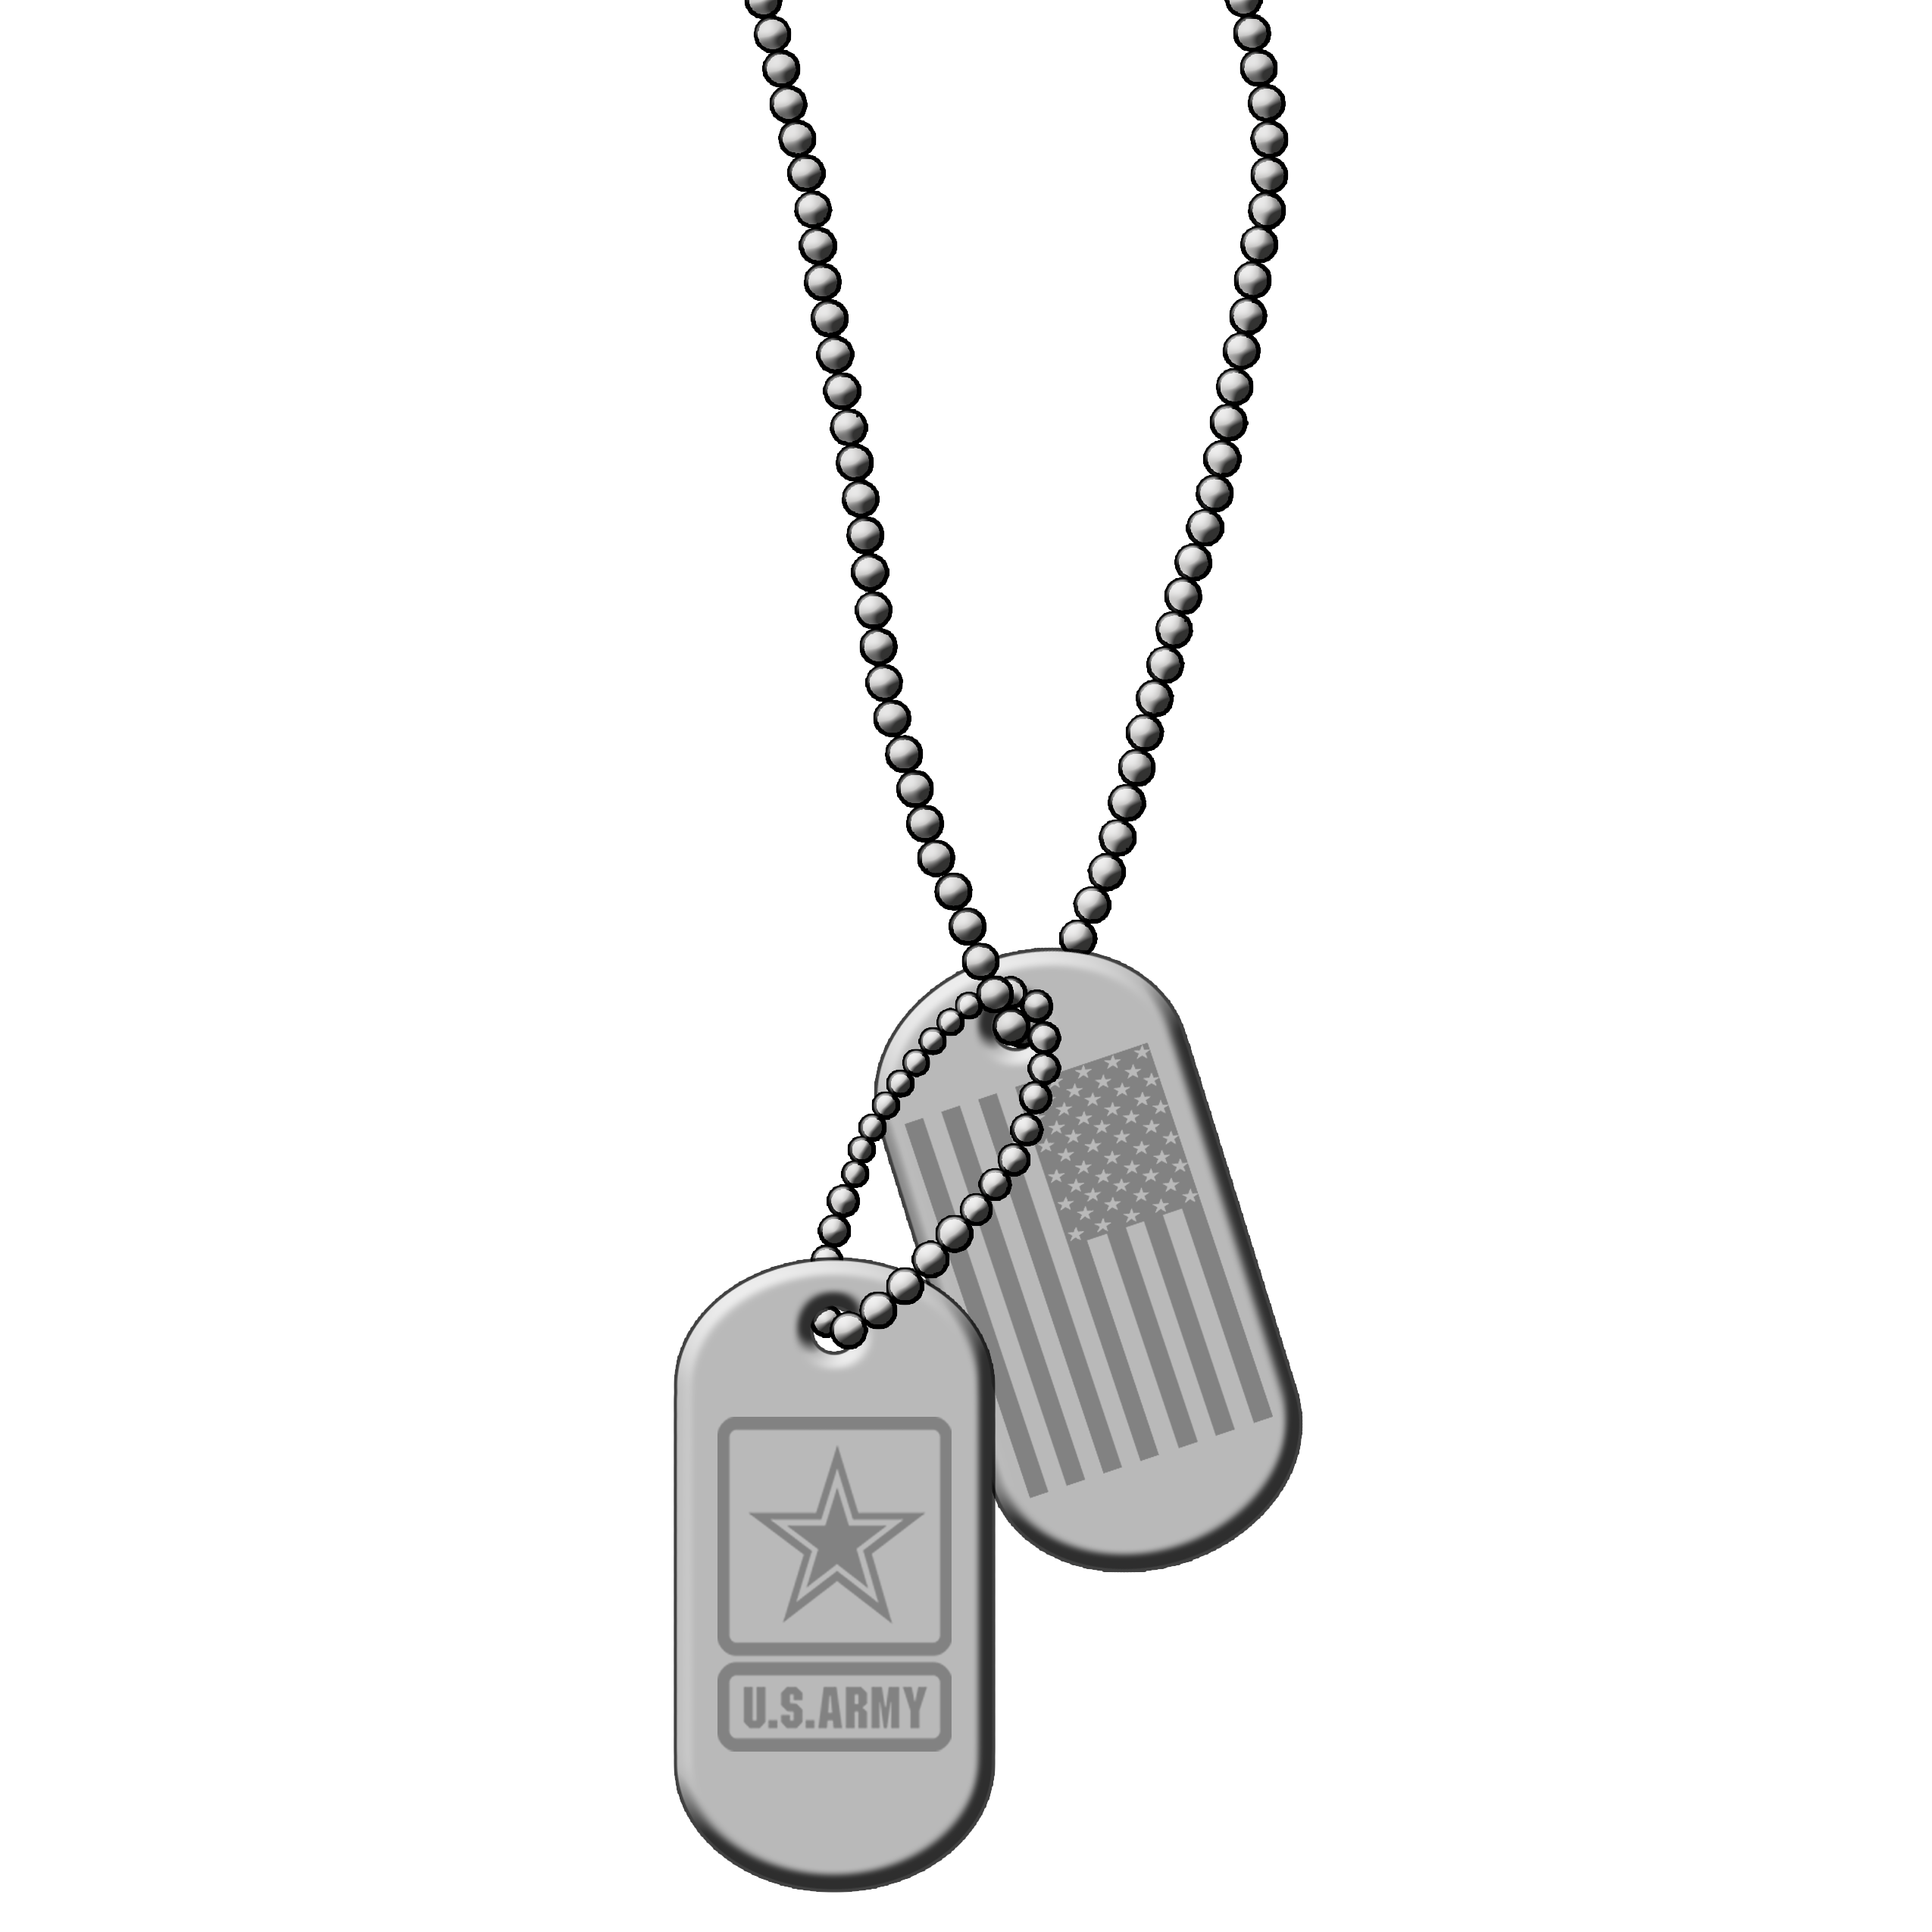 Army dog tag clipart vector freeuse library ID Dog Tags Silver Metal PNG Clip art Vector US ARMY | My Designs ... vector freeuse library